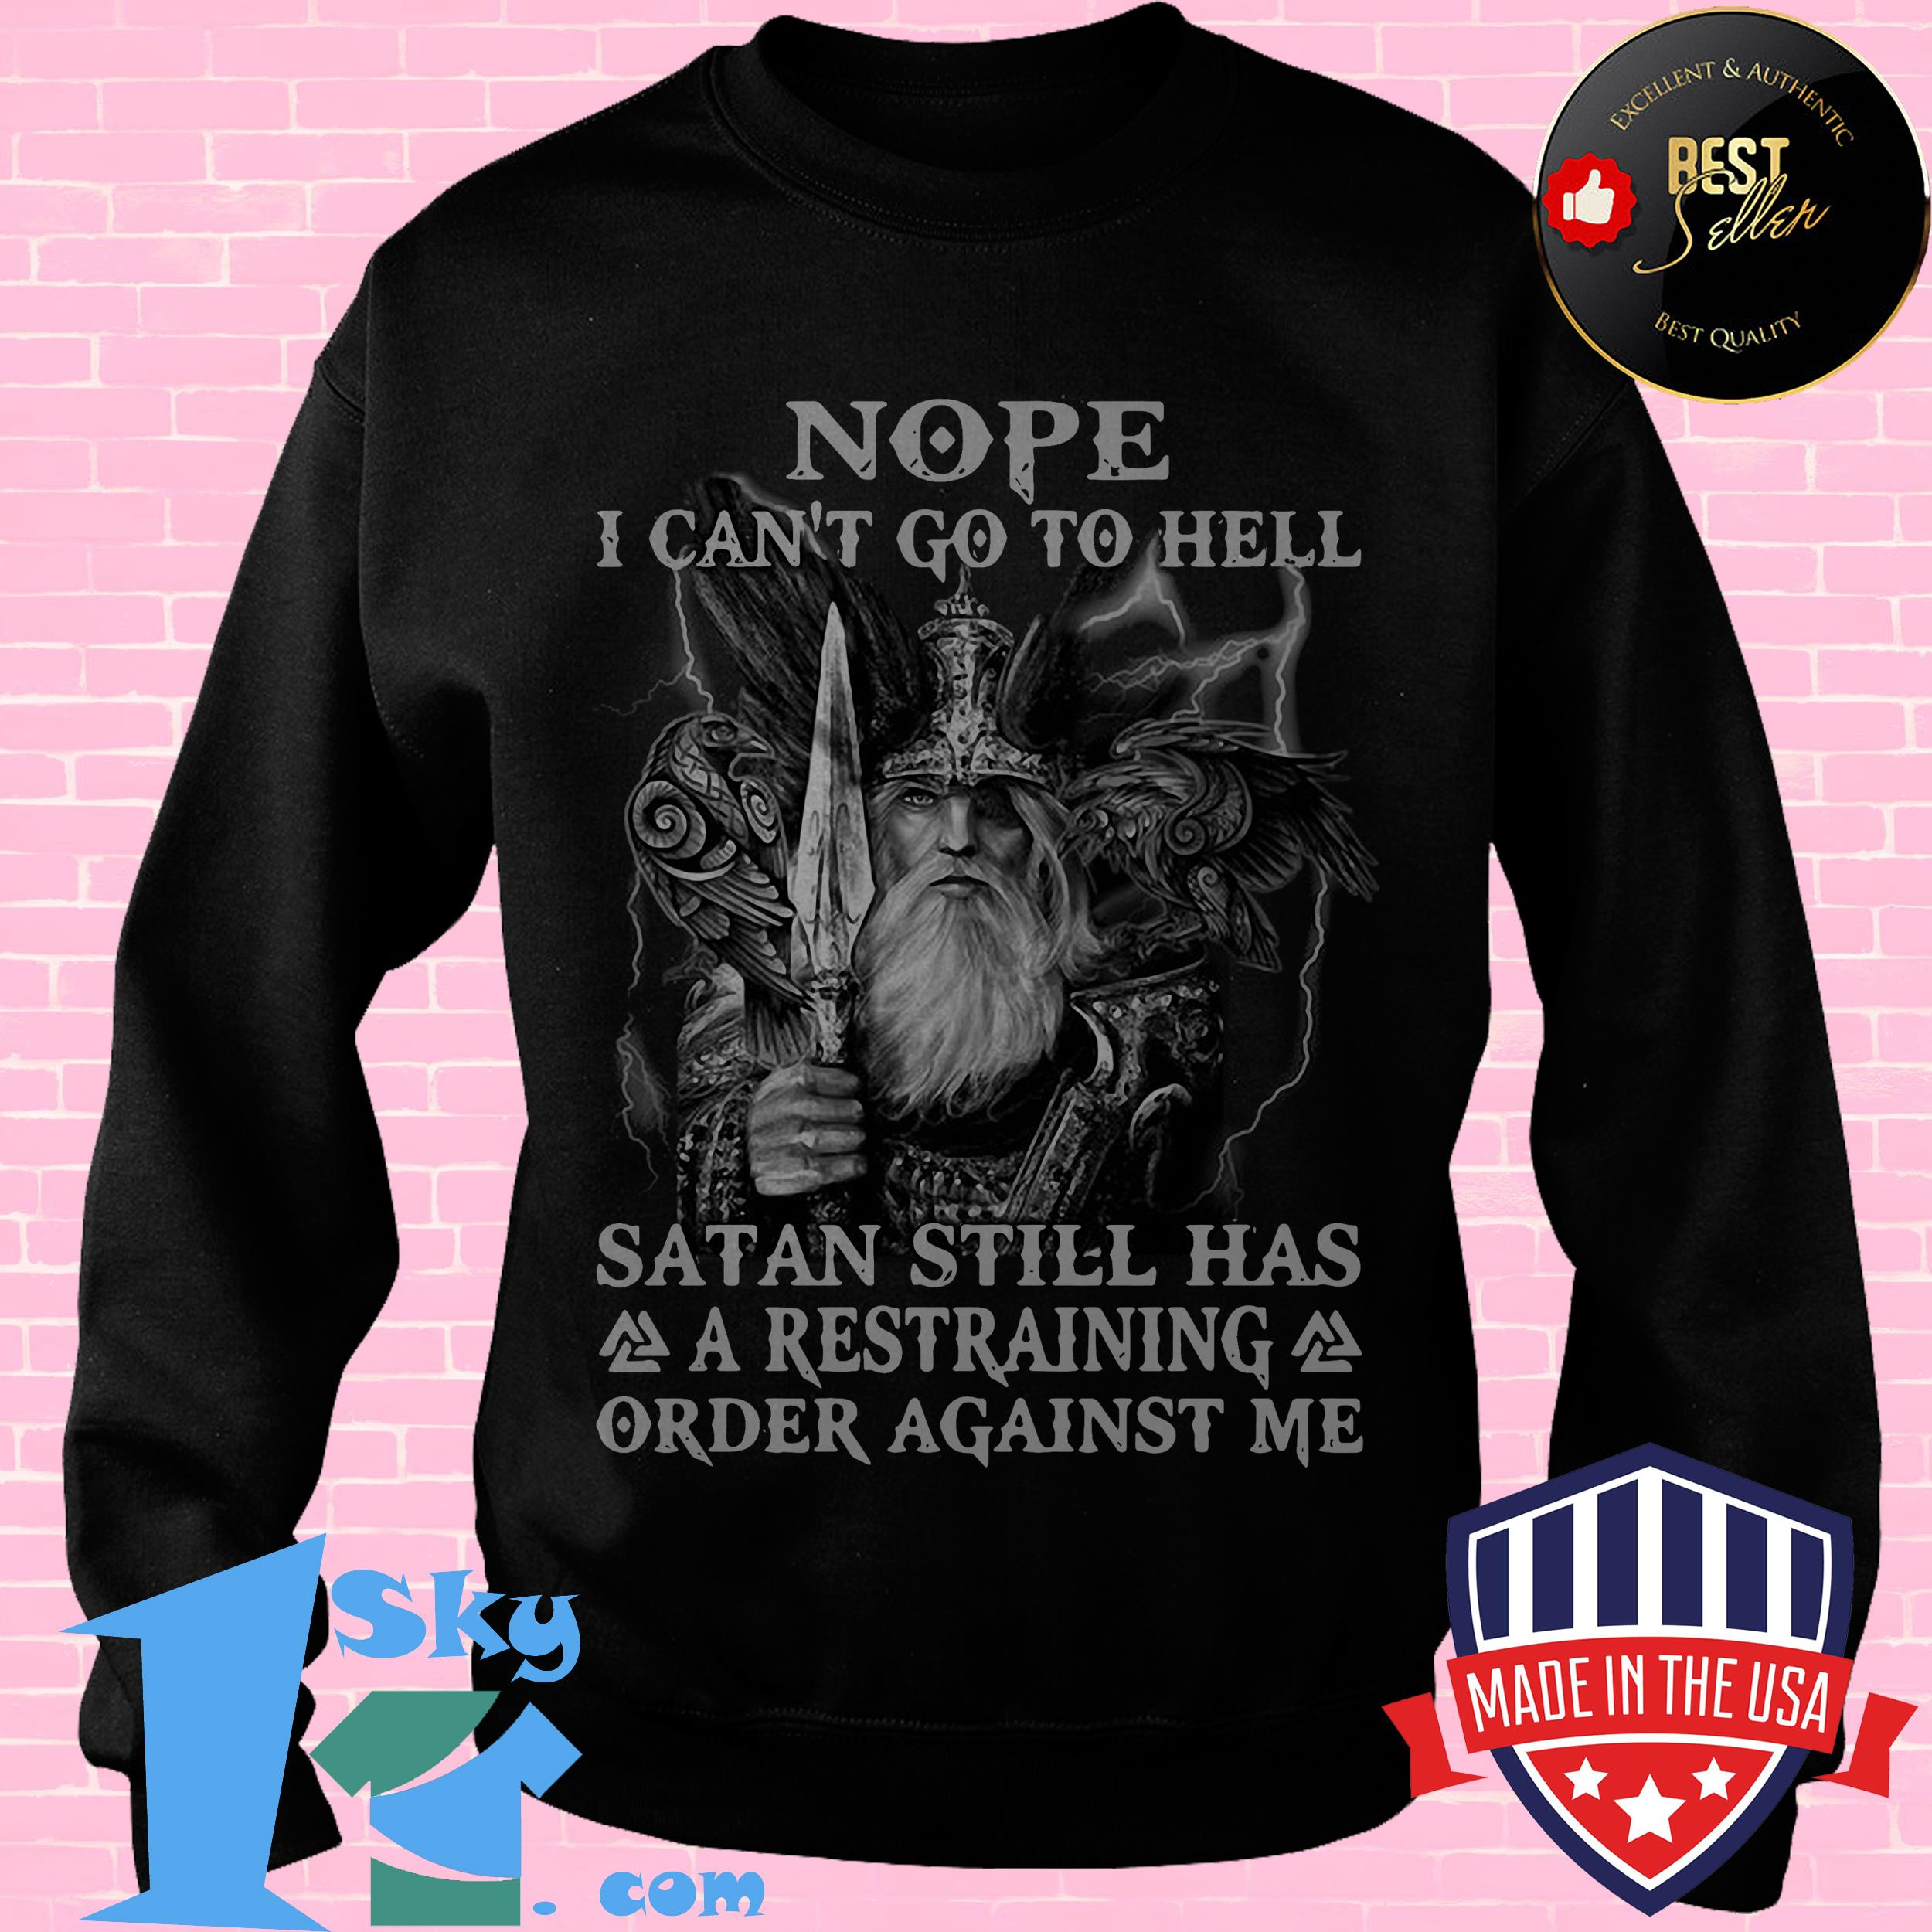 Nope I Can't Go To Hell Satan Still Has A Restraining Order Against Me Shirt